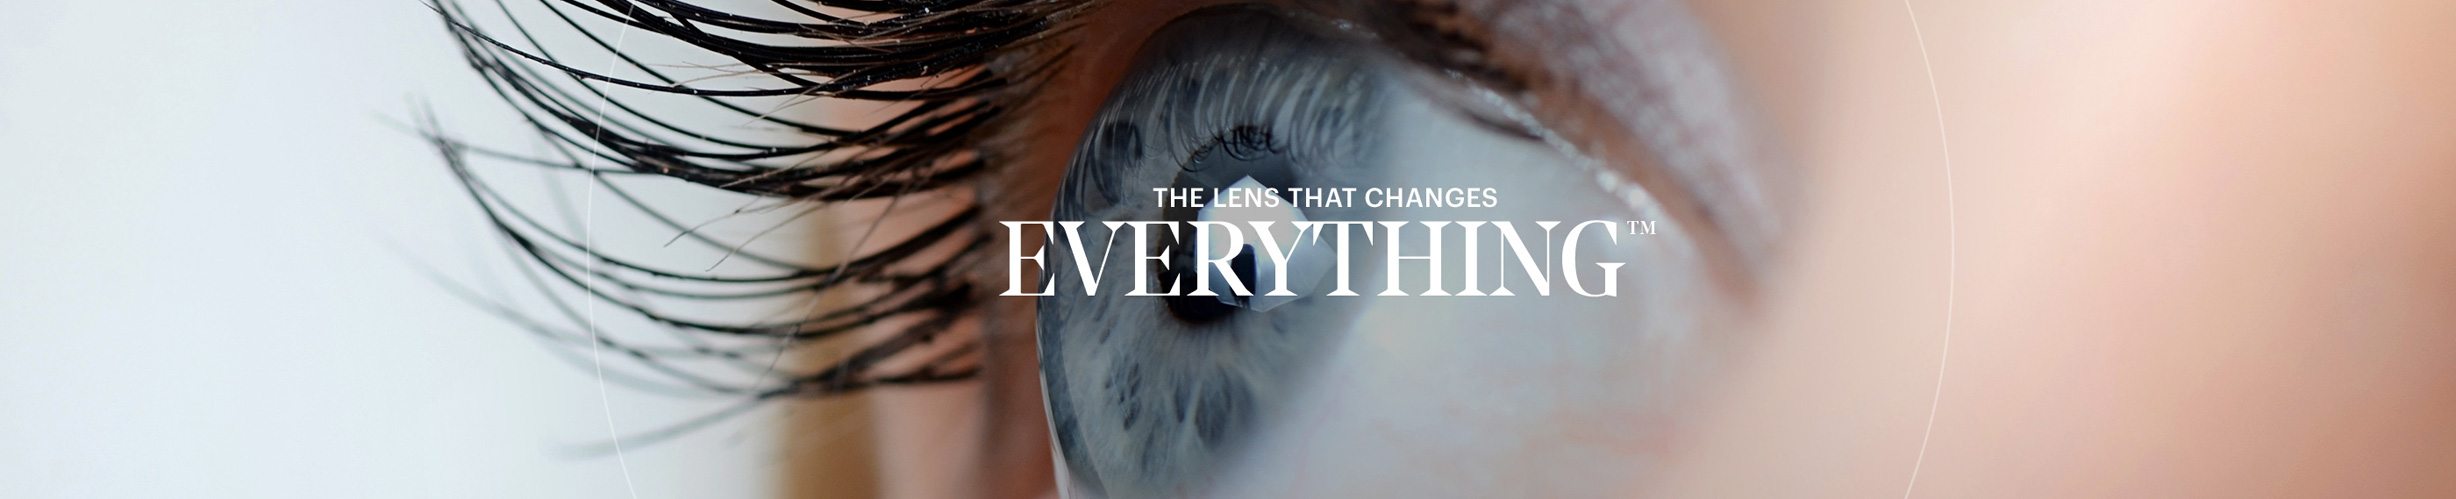 THE LENS THAT CHANGES EVERYTHING™